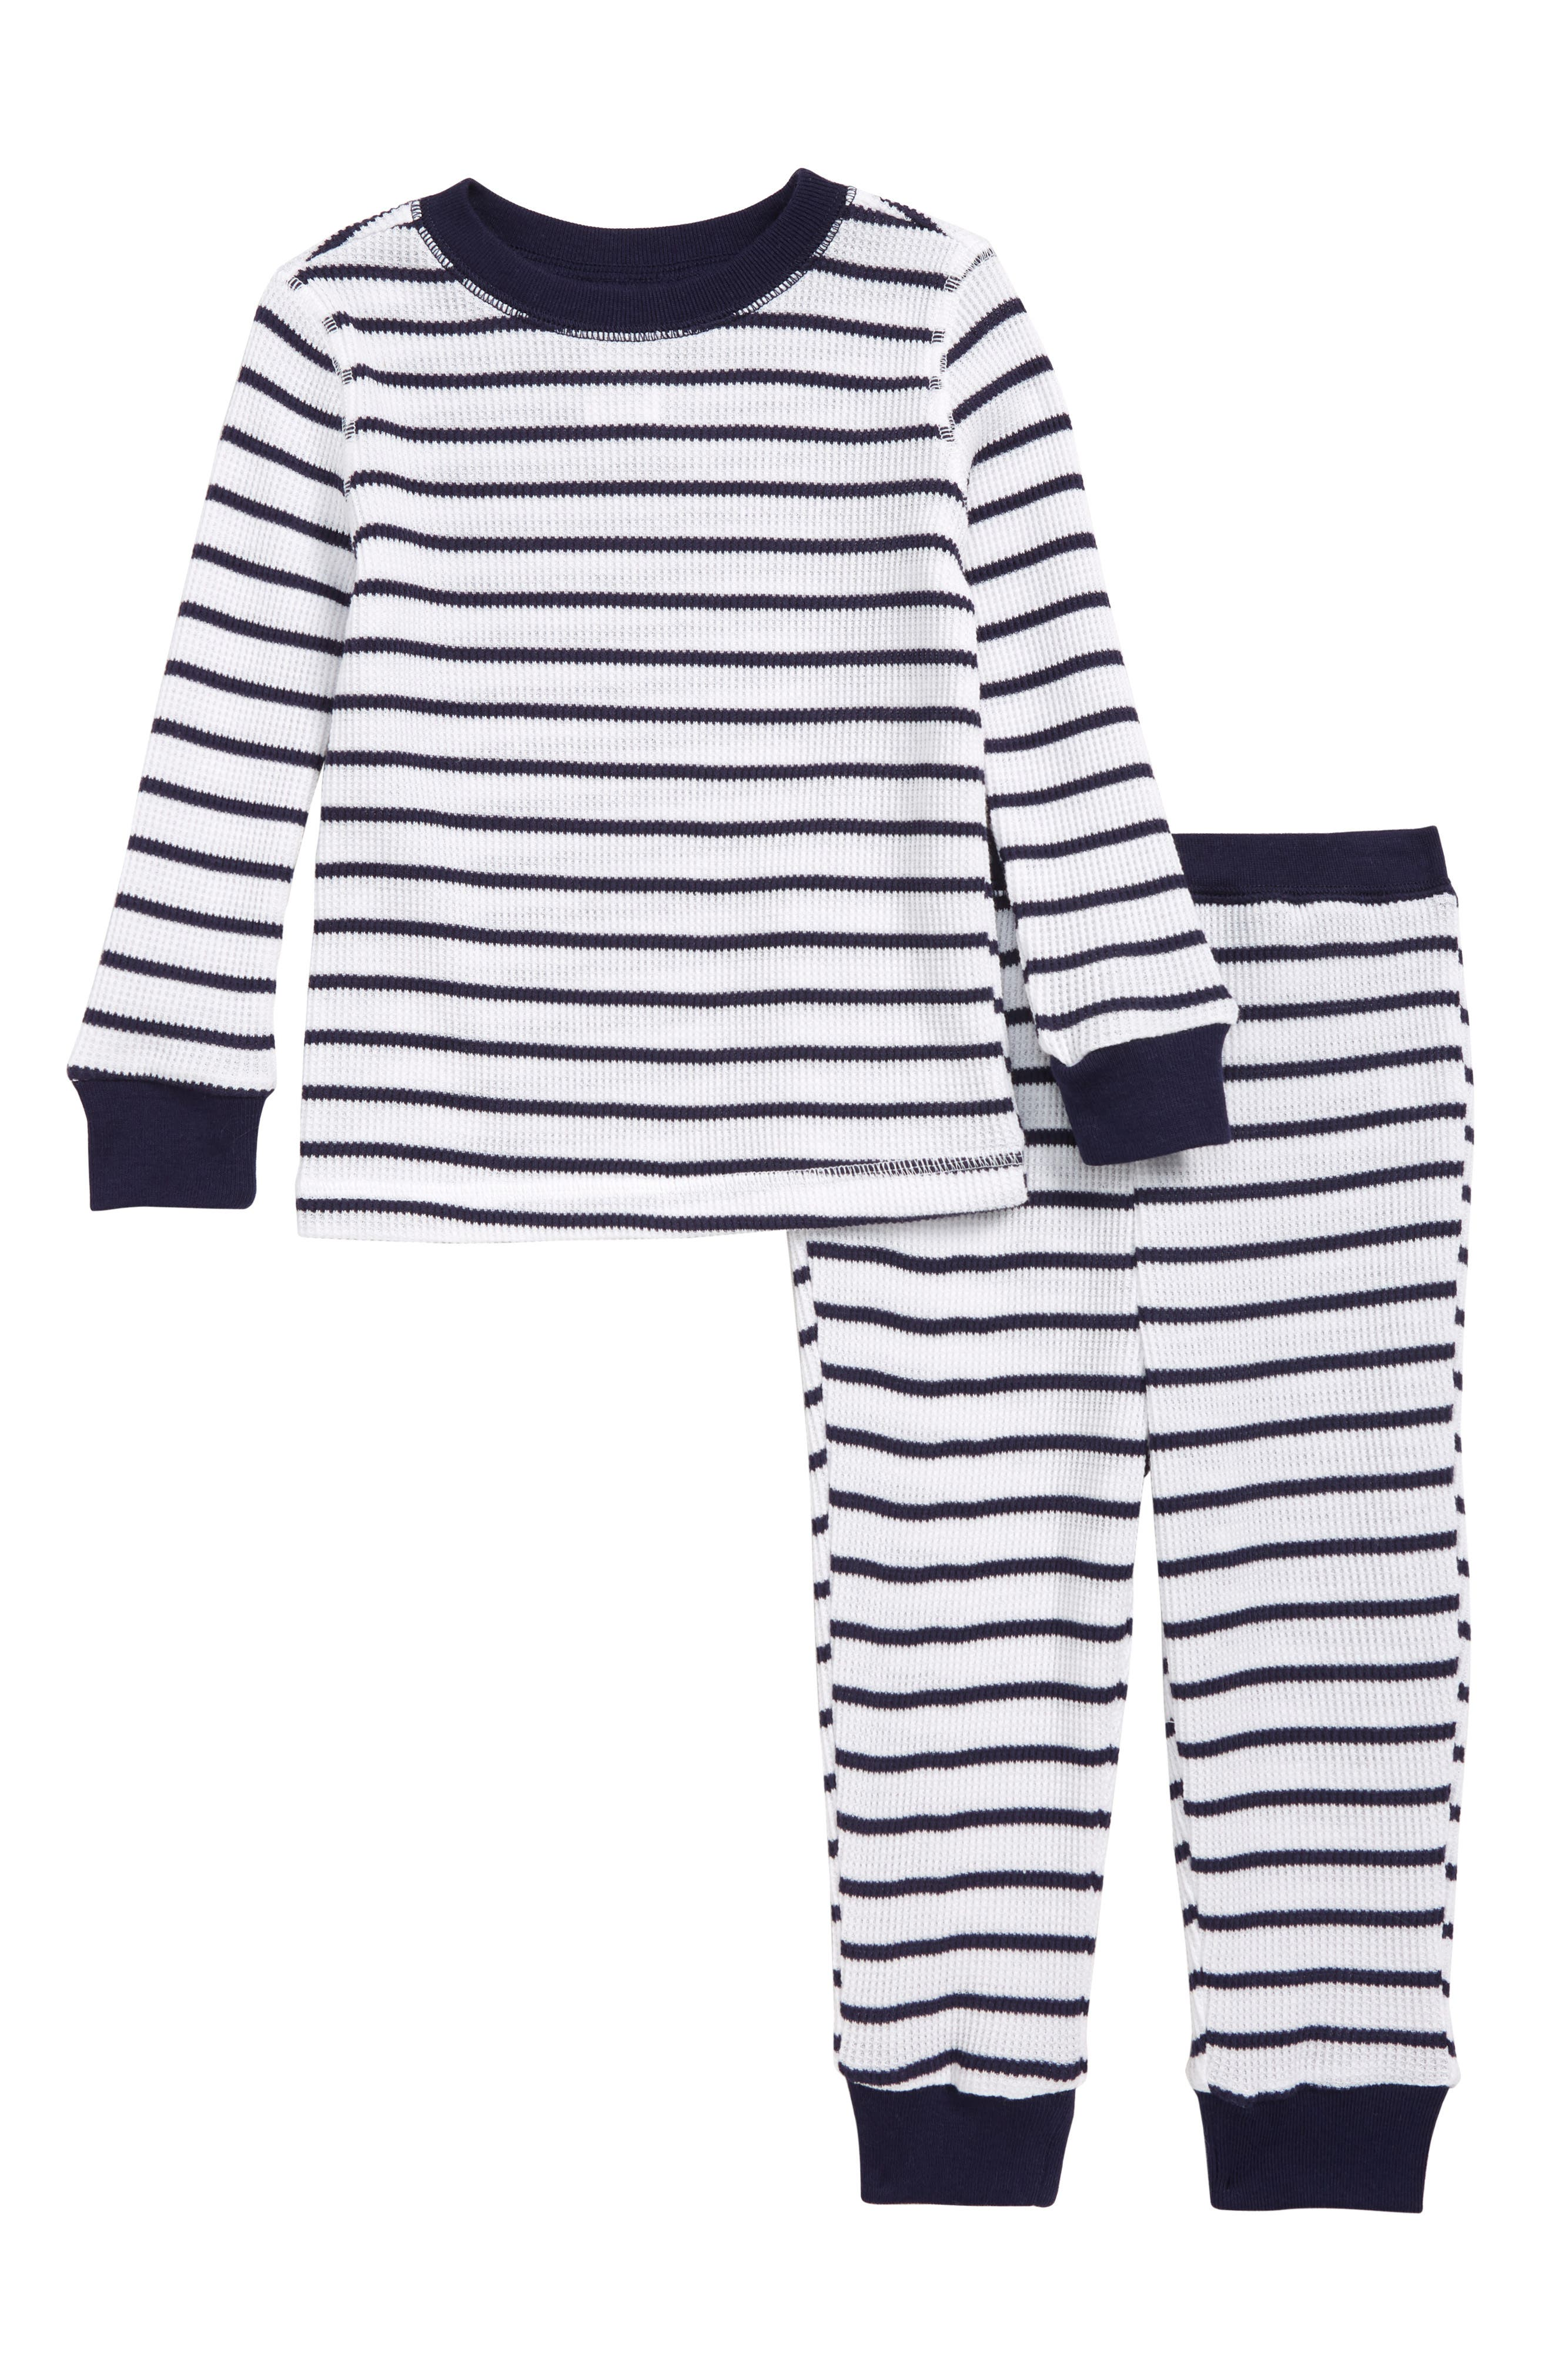 Fitted Thermal Two-Piece Pajamas,                         Main,                         color, NAVY AND WHITE STRIPE